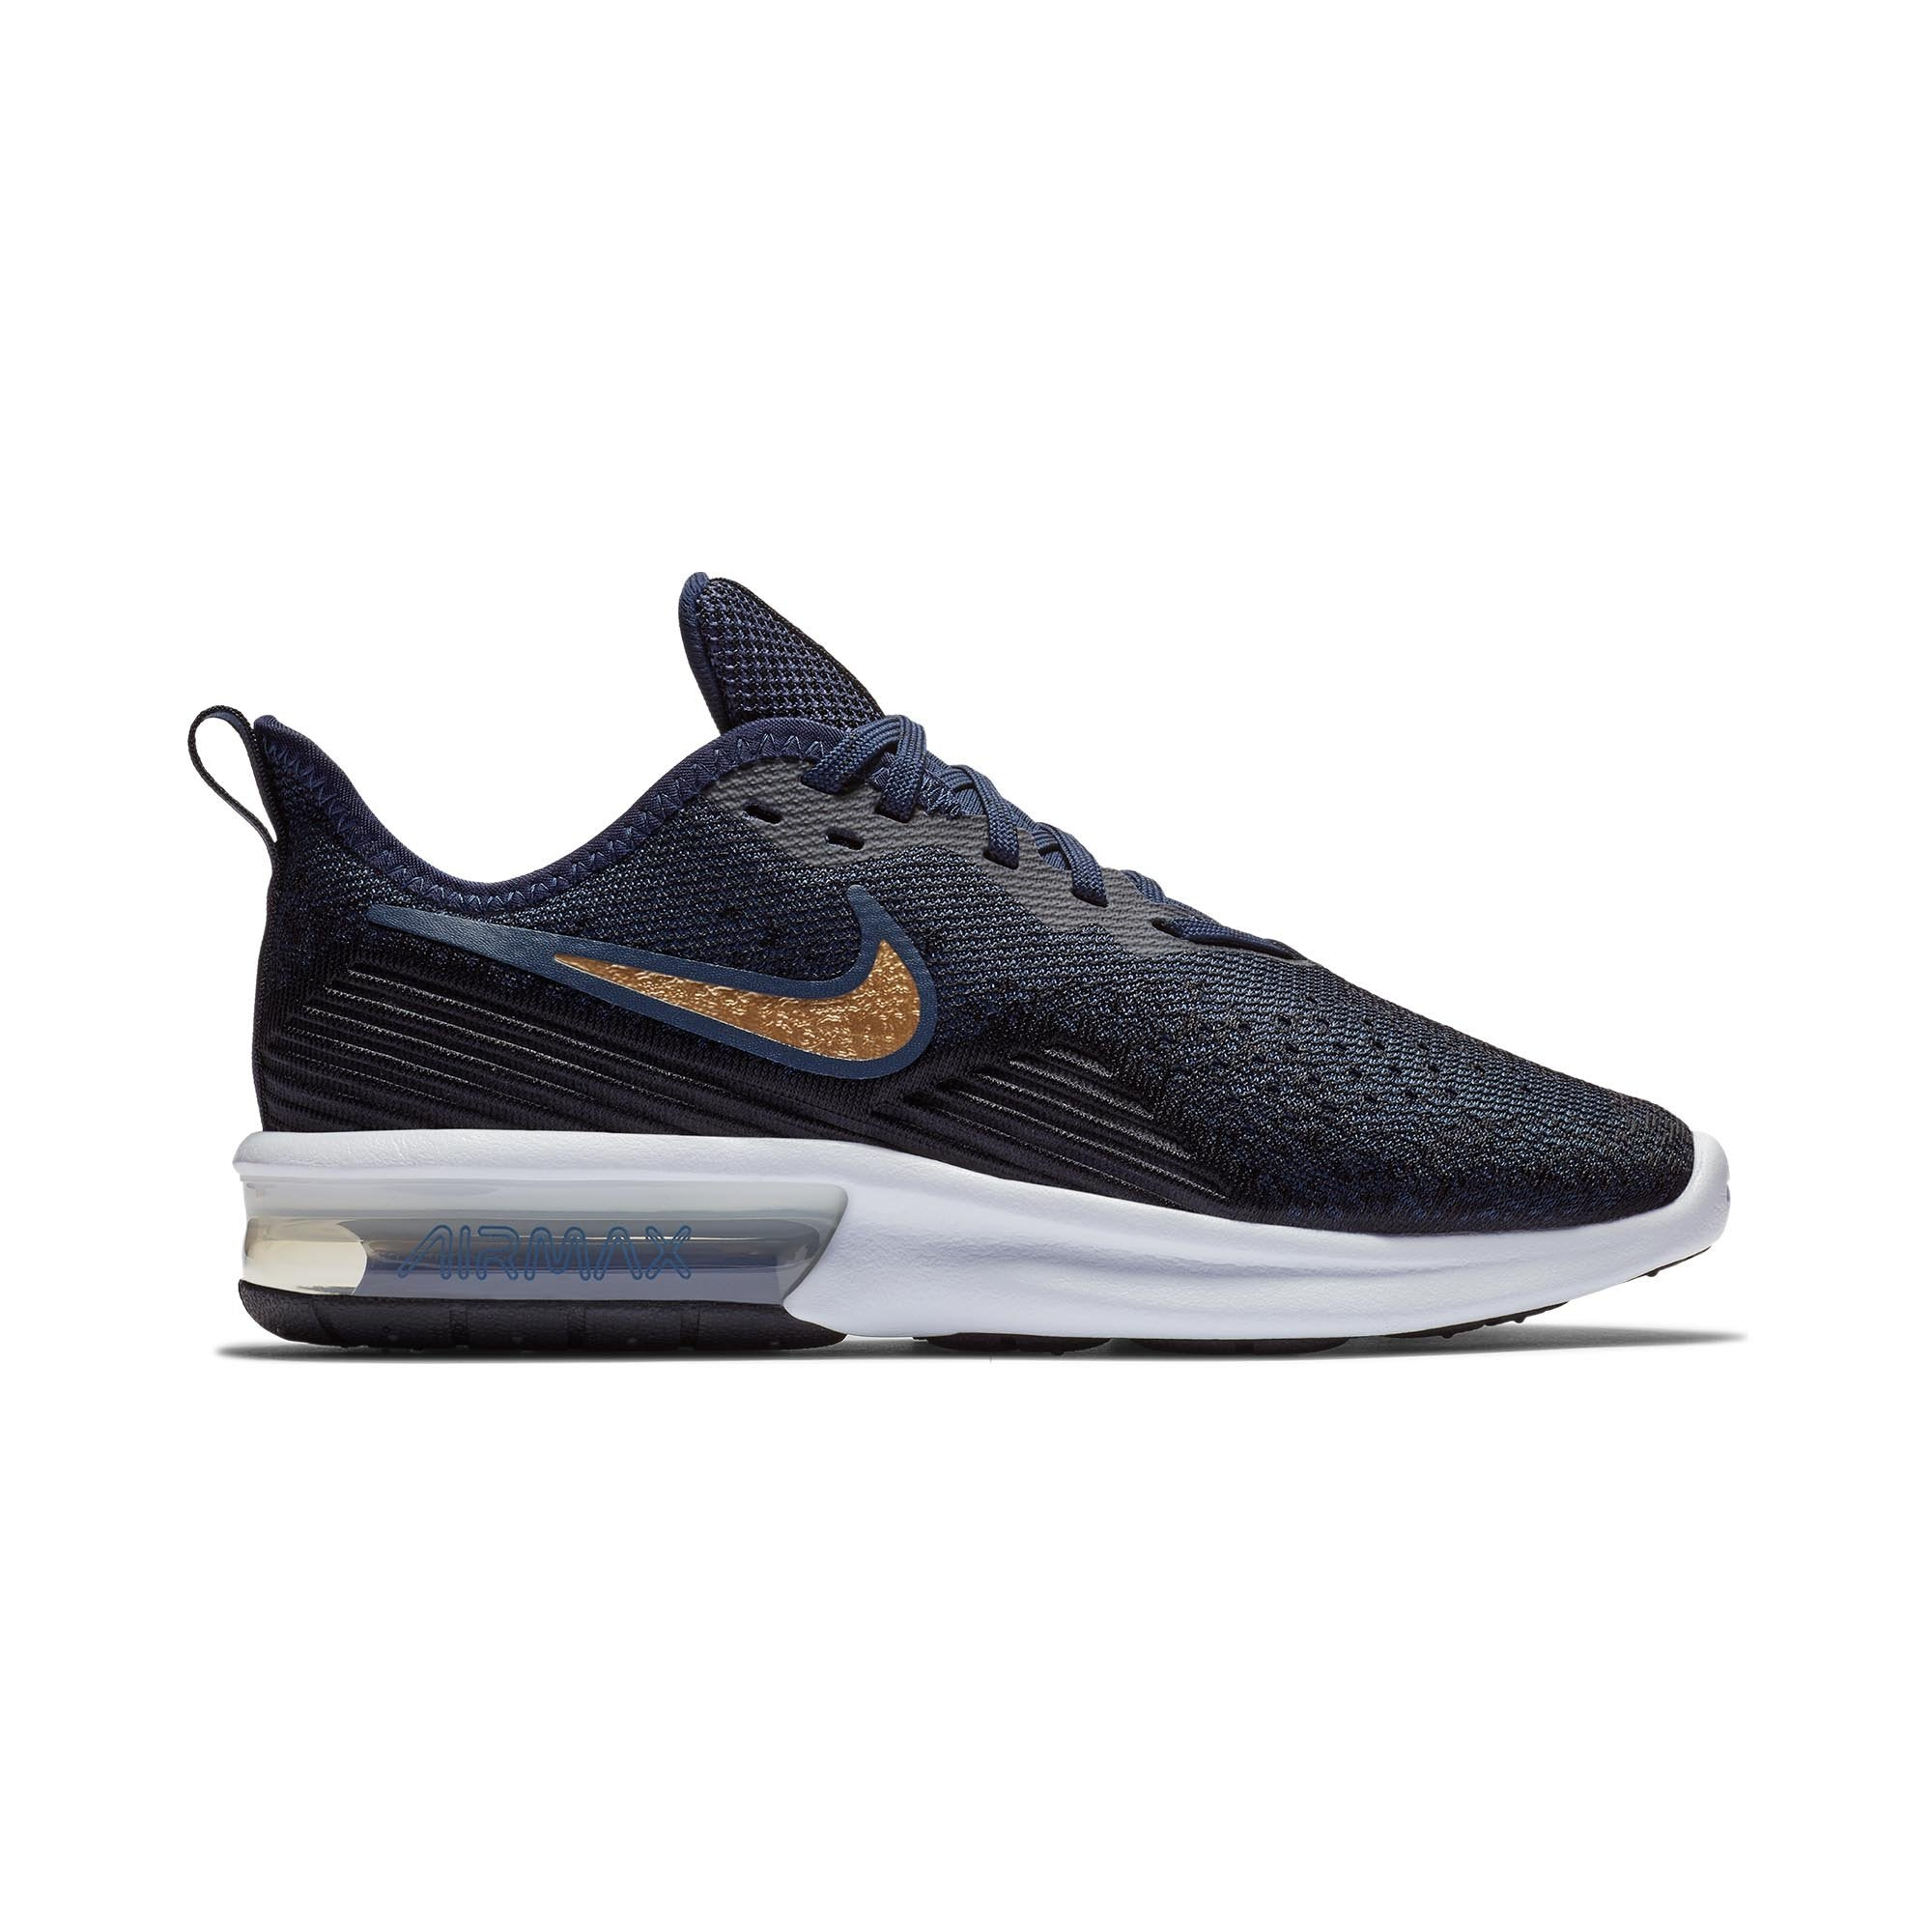 08138070809 Buy Nike Women Air Max Sequent 4 Running Shoes